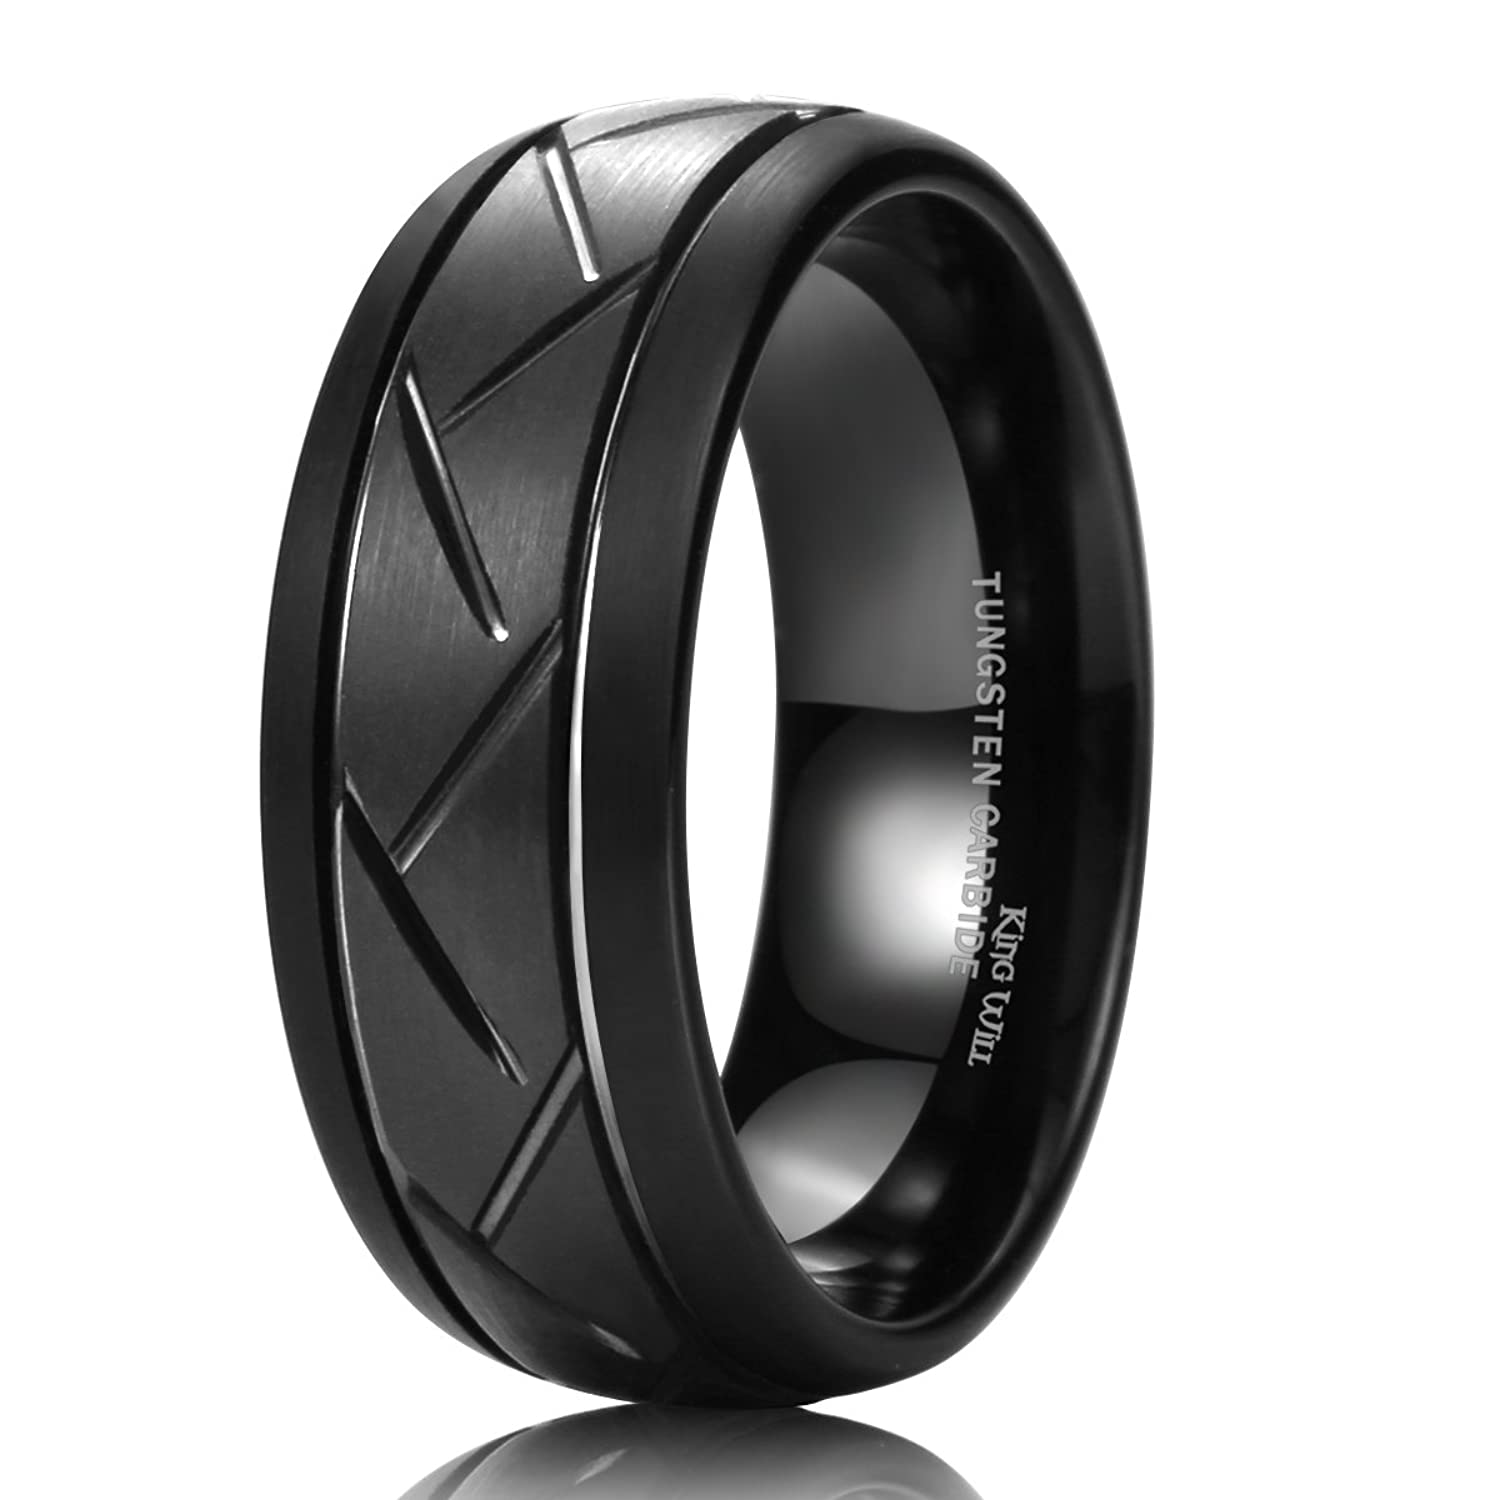 rings blue wedding carbide tungsten black mens amazon dp co queenwish uk fibre silvering band dragon ring jewellery celtic carbon